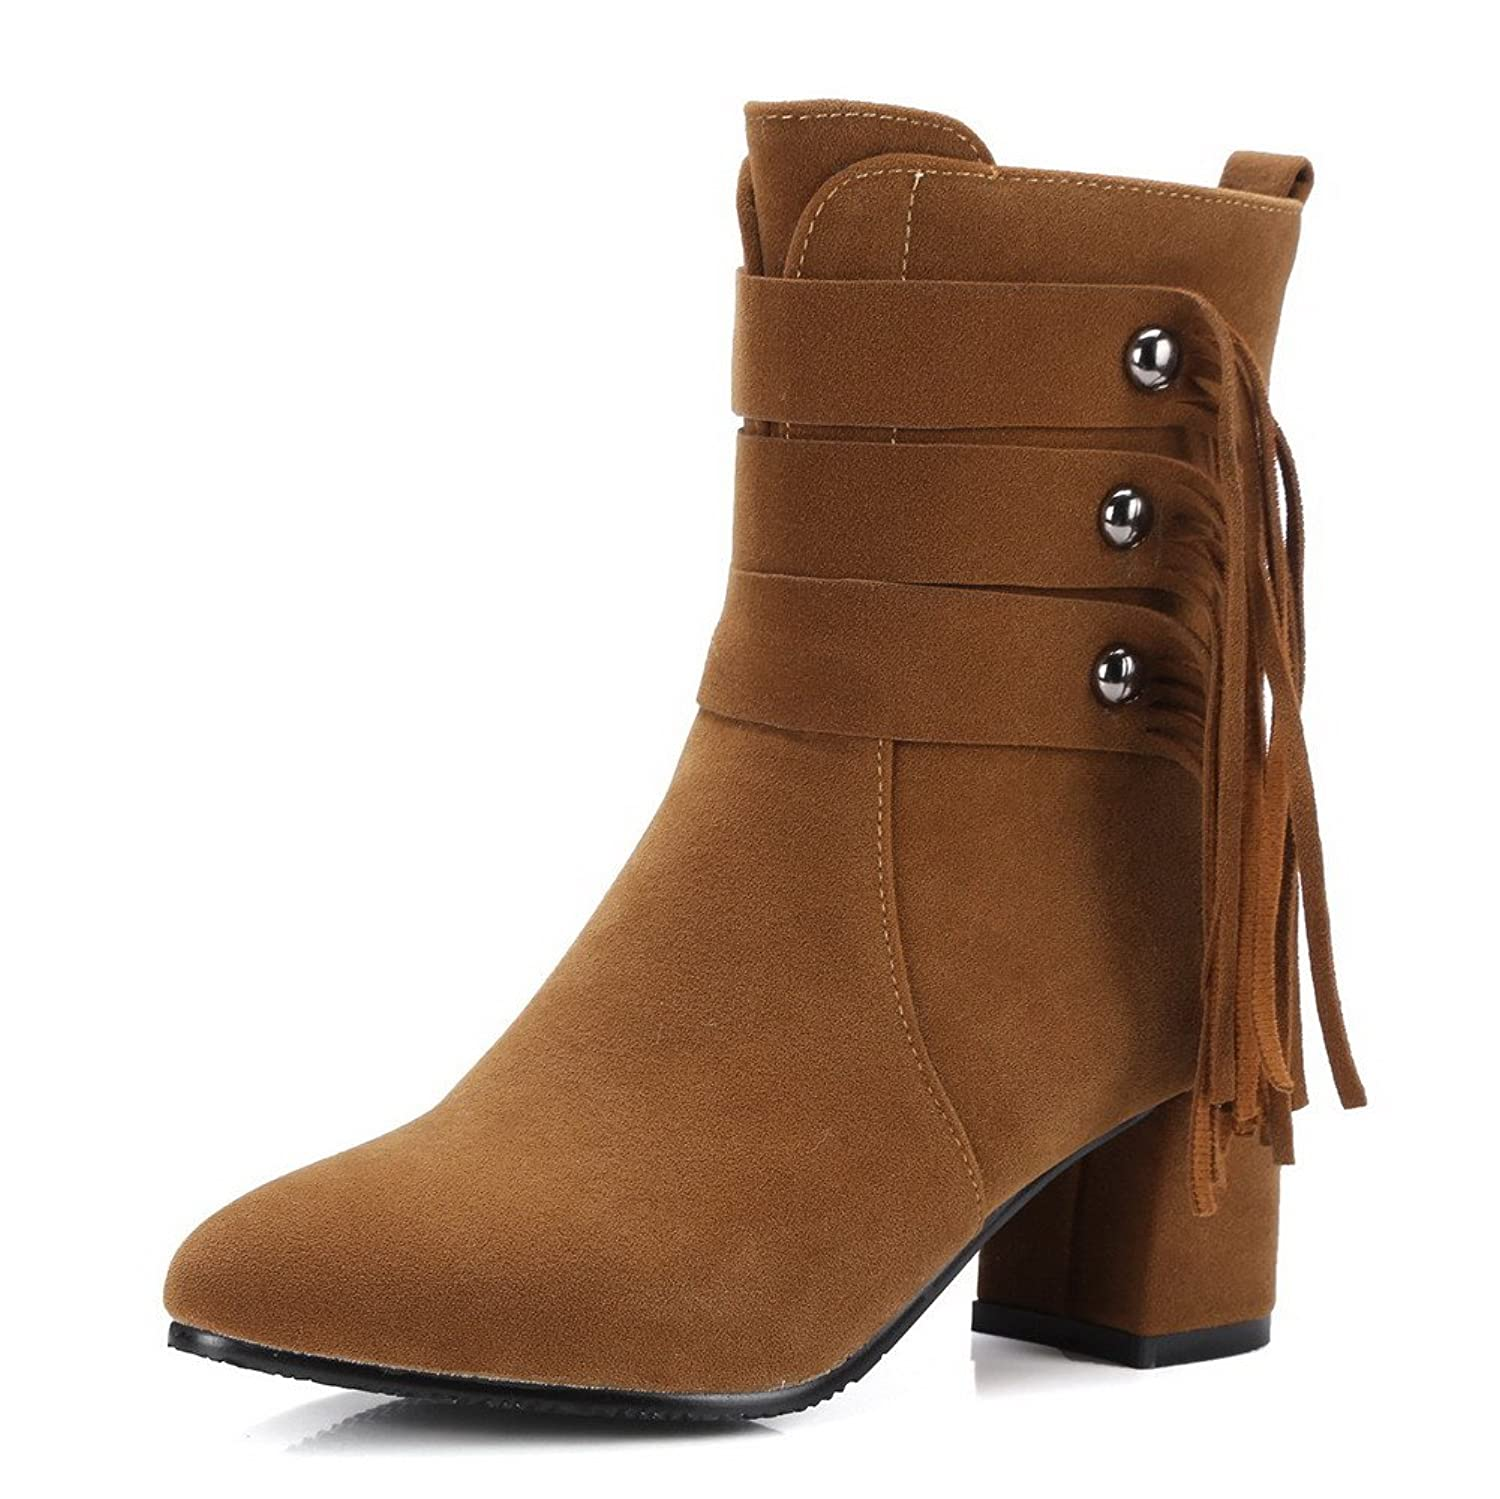 AgooLar Women's Pointed Closed Toe Kitten-Heels Frosted Low-top Solid Boots